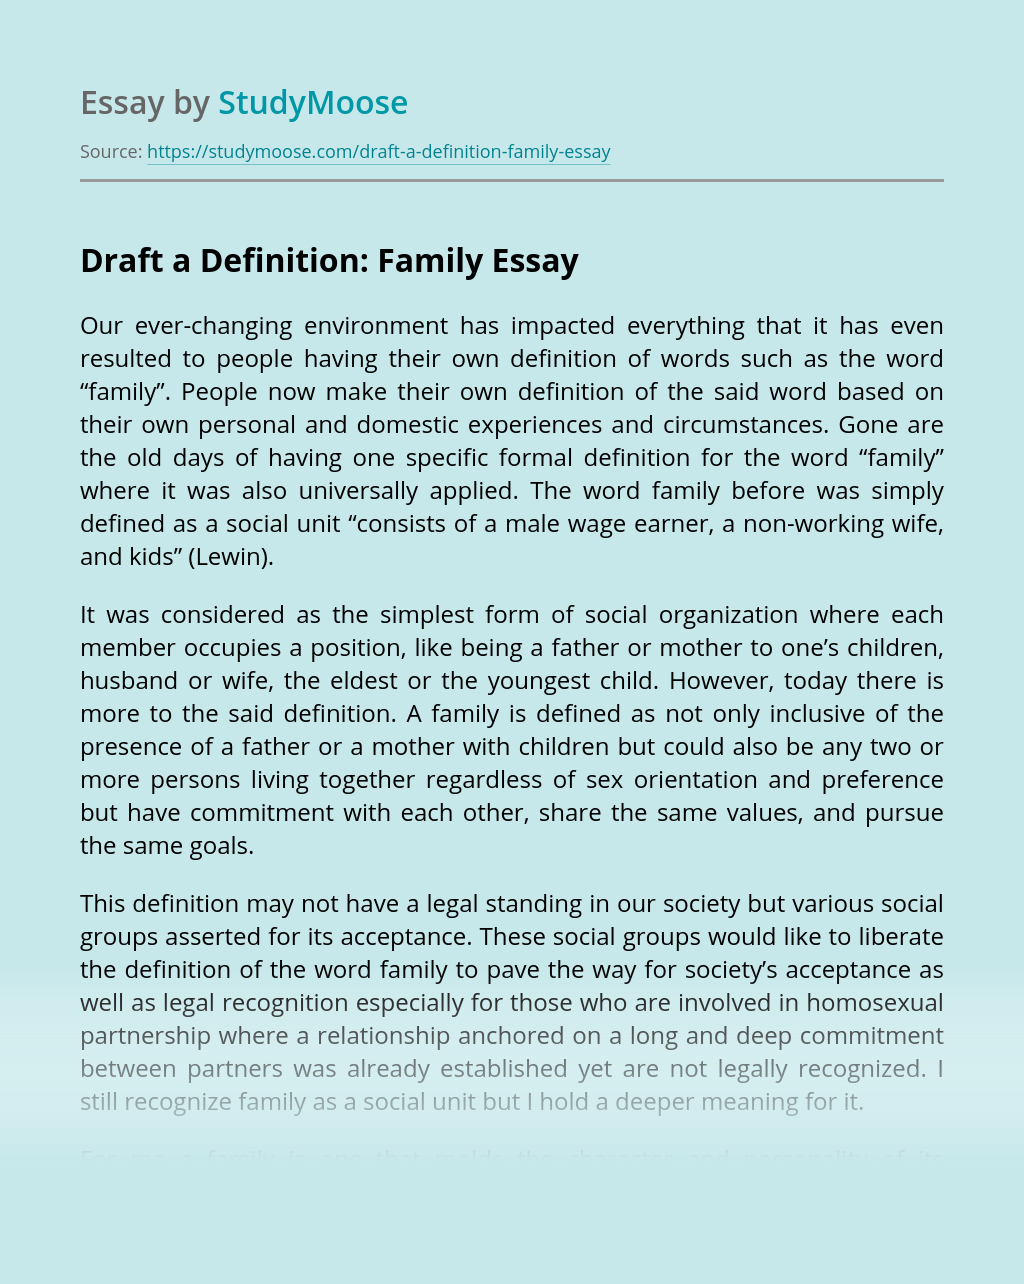 Draft a Definition: Family